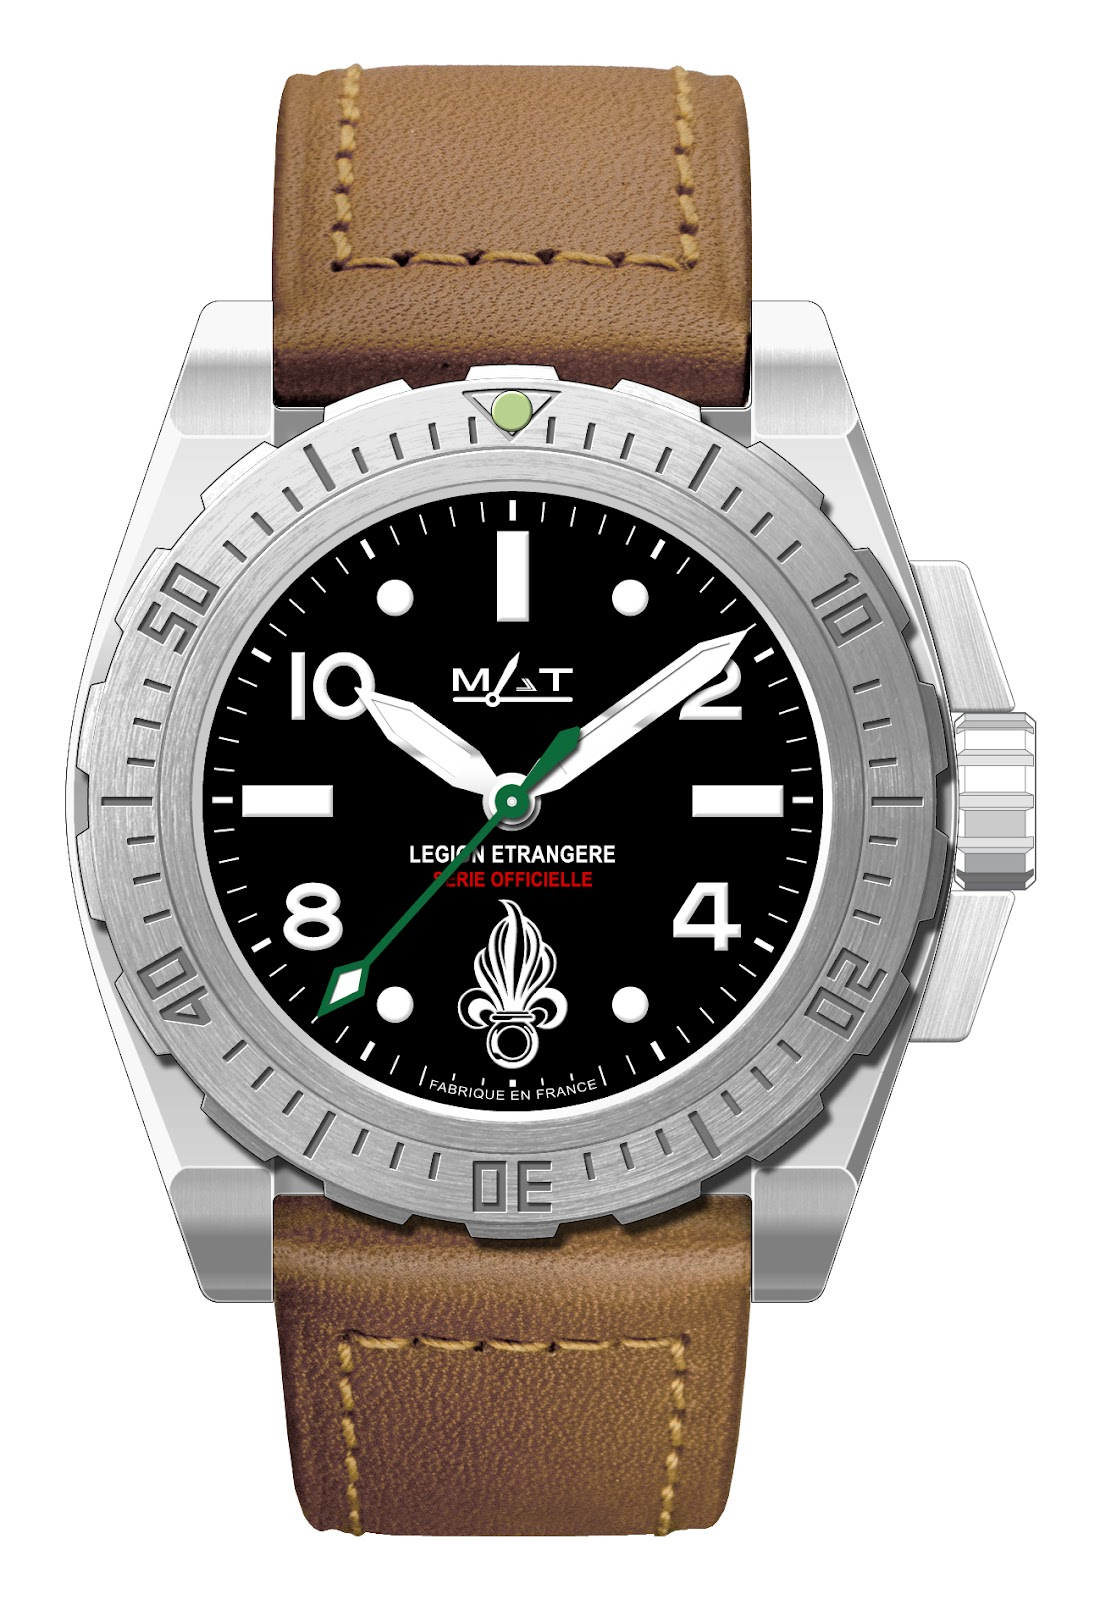 Watches By Sjx News French Foreign Legion Anniversary